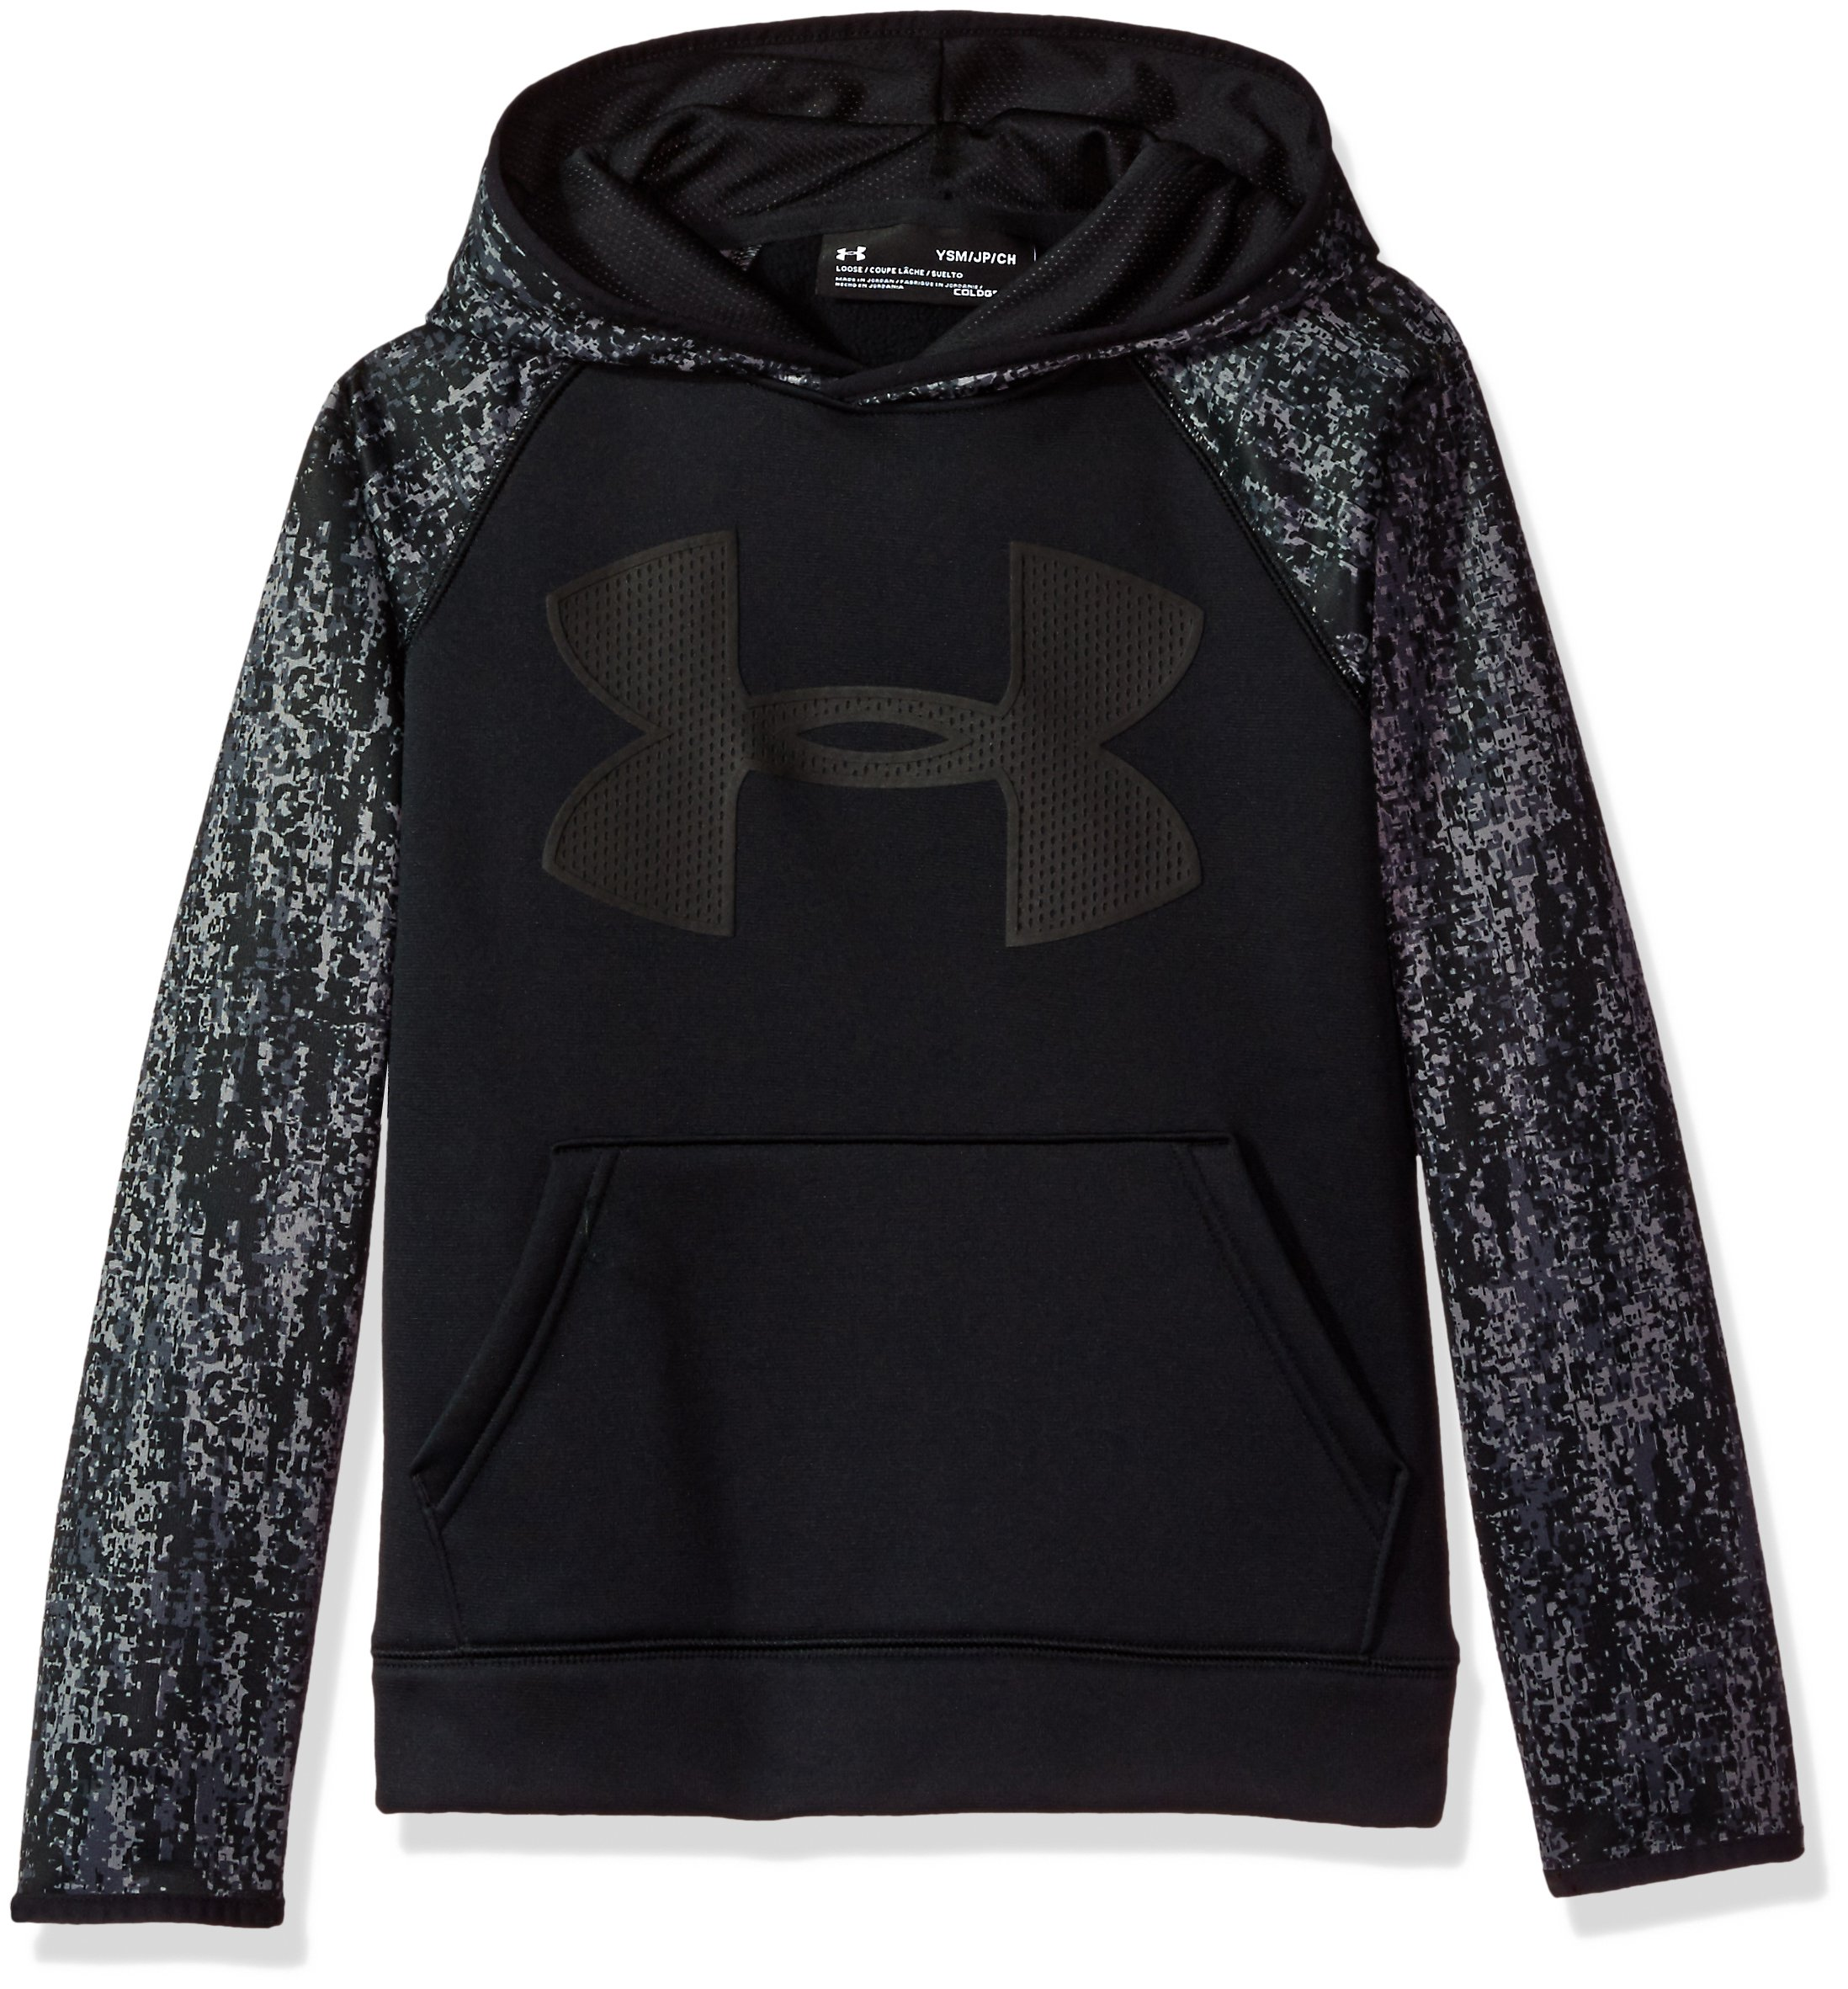 Under Armour Boys' Storm Armour Fleece Big Logo Printed Hoodie,Black (001)/Black, Youth X-Small